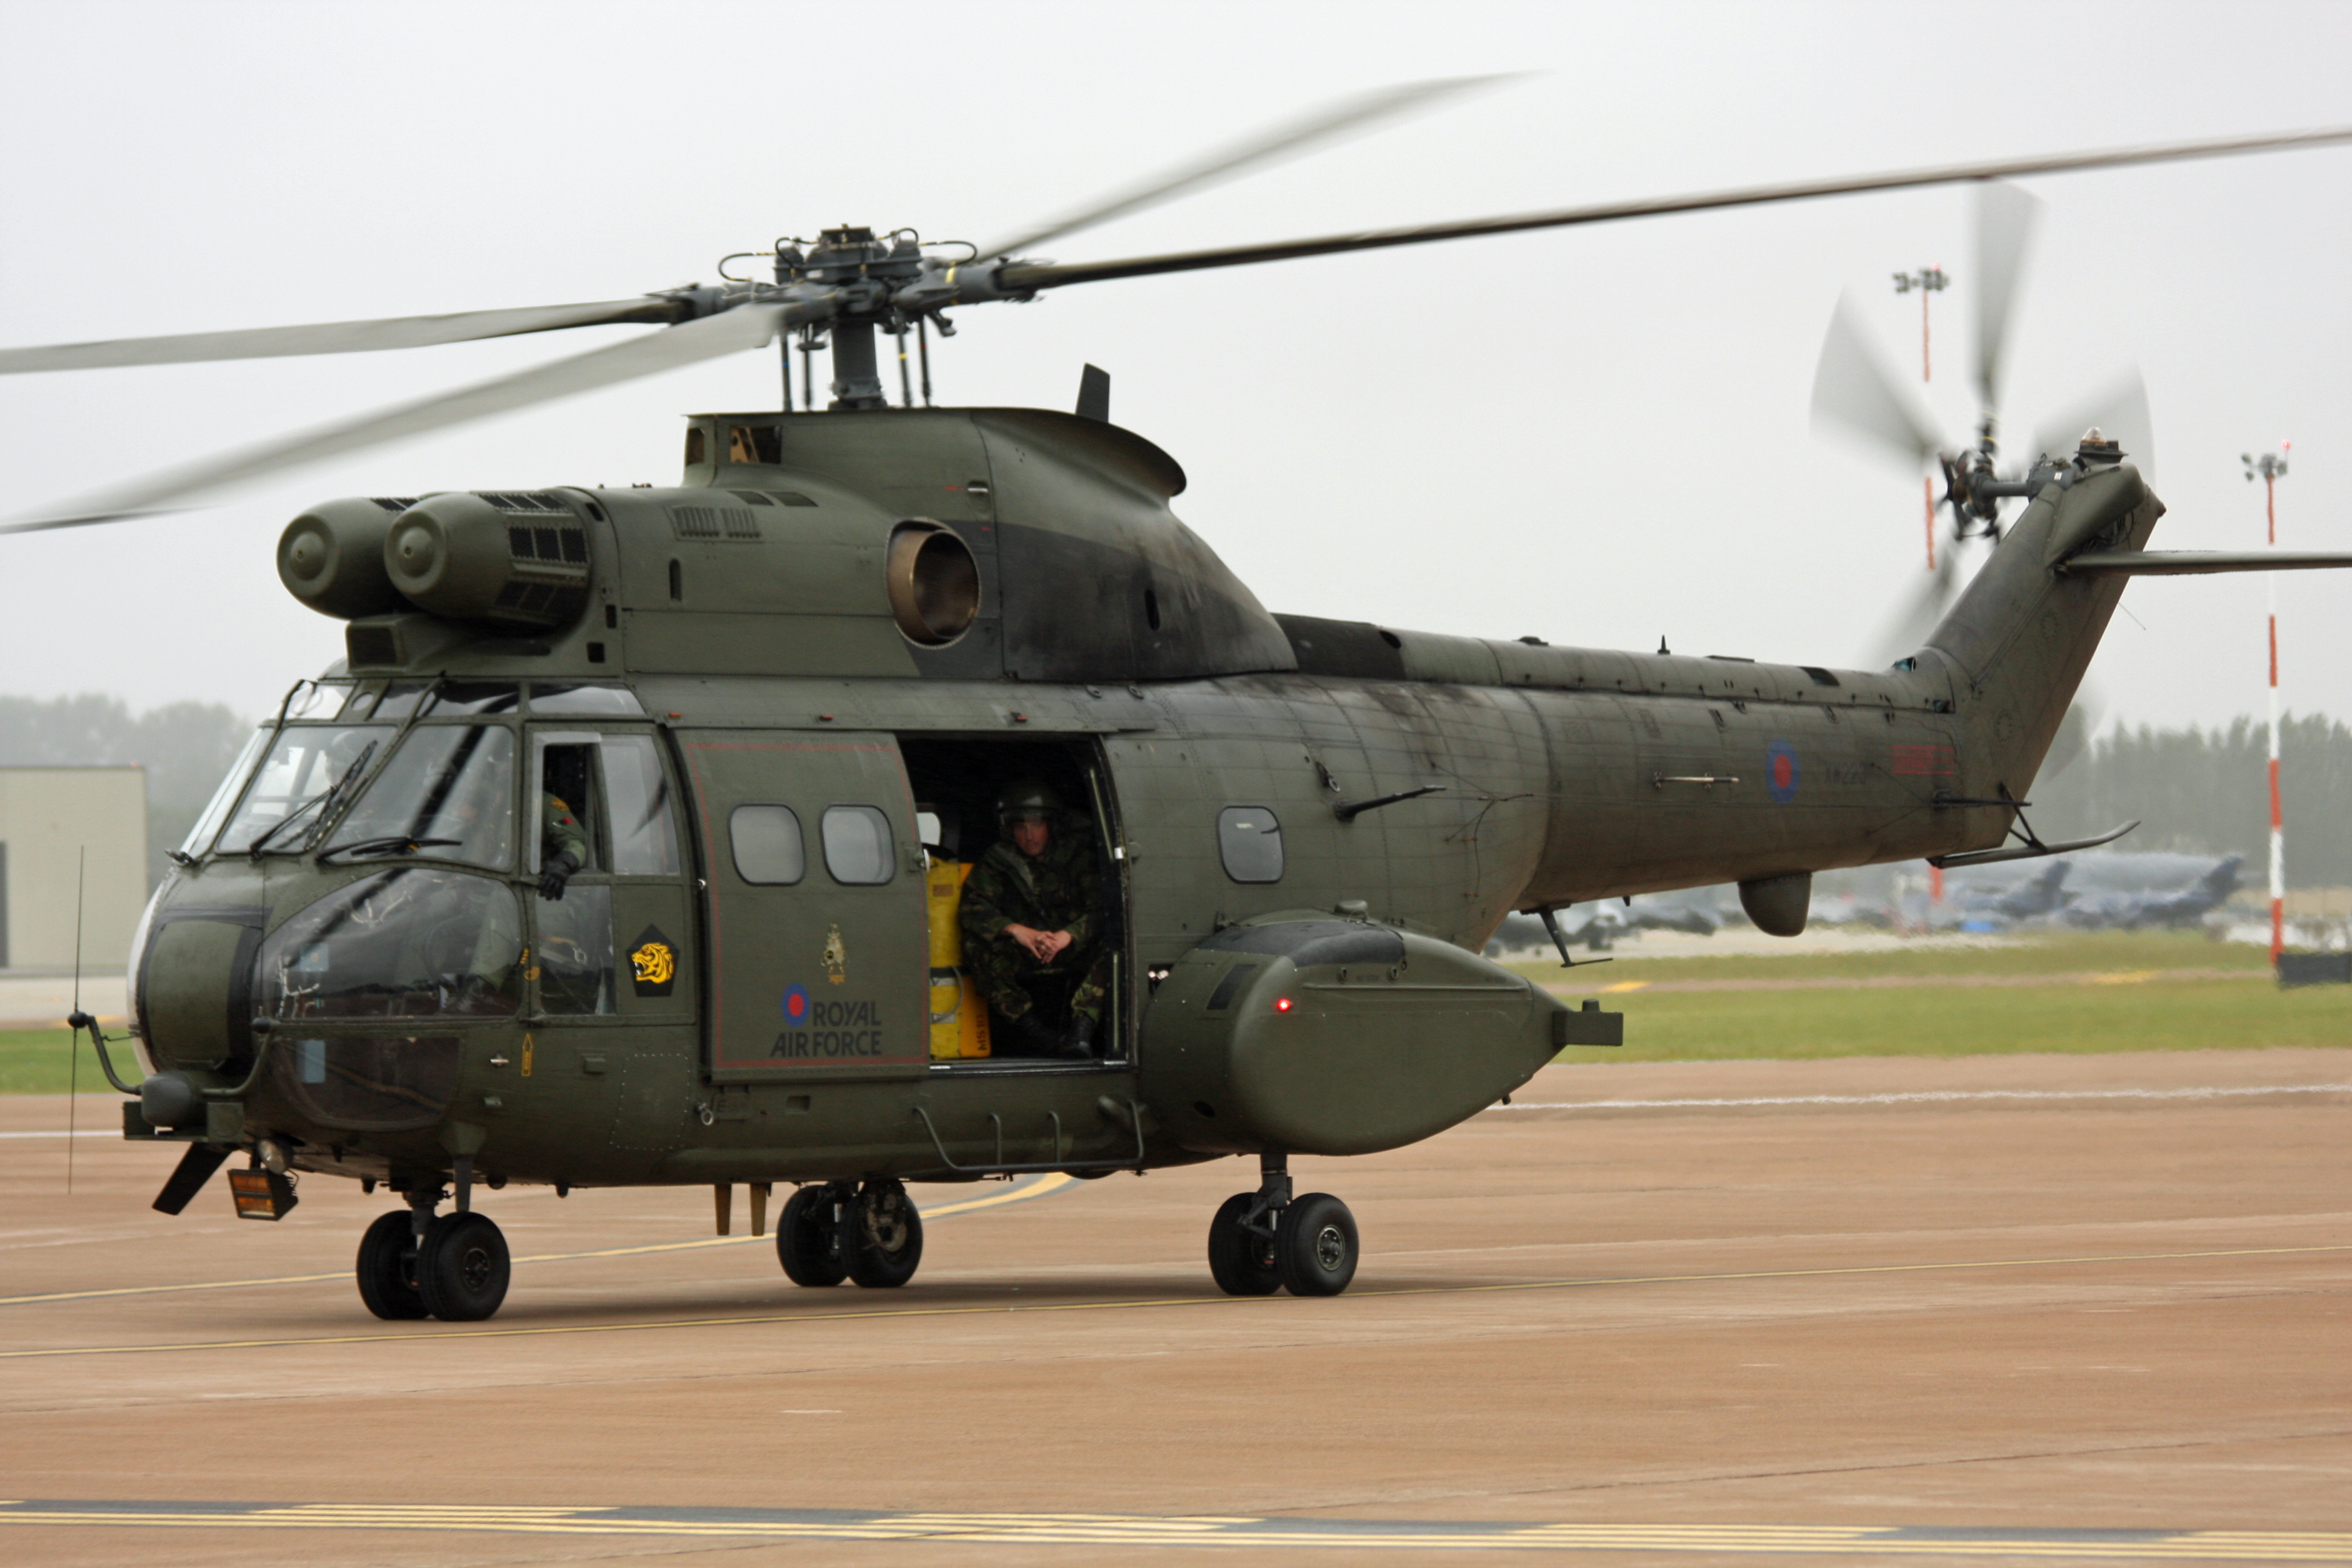 army helicopter pilot with Aerospatiale Sa 330 Puma on Aerospatiale Sa 330 Puma furthermore 723 Squadron History likewise Ch11 additionally Pilotresume Sneh Deep likewise F35b.